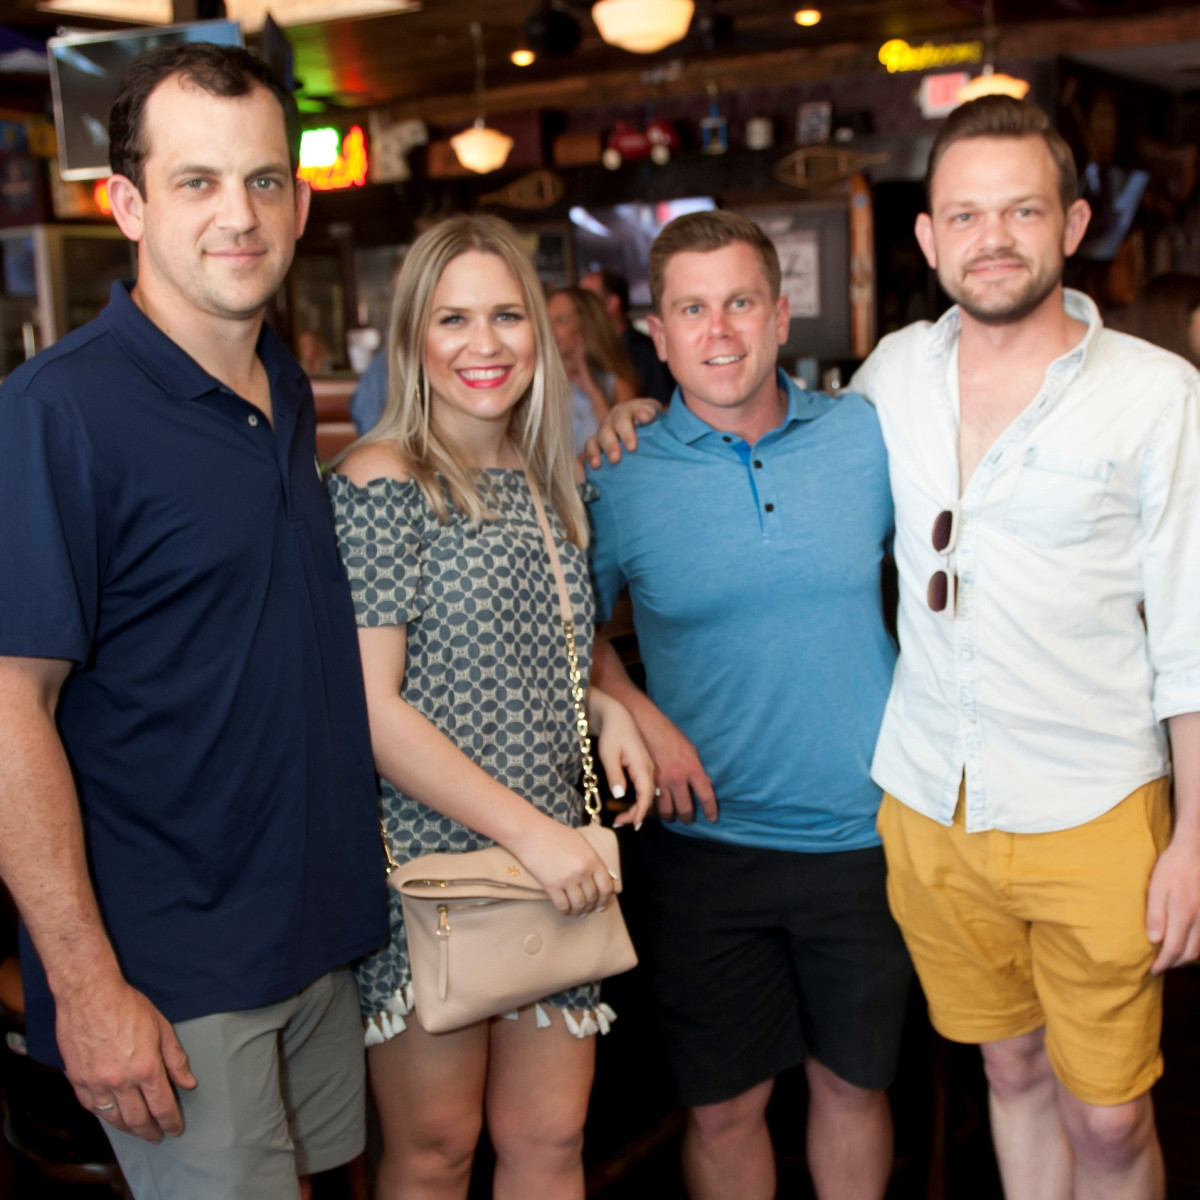 Rick and Megan Scheurer, Ryan Merz and Scriven Bernard, JDRF Brew the Cure 2018